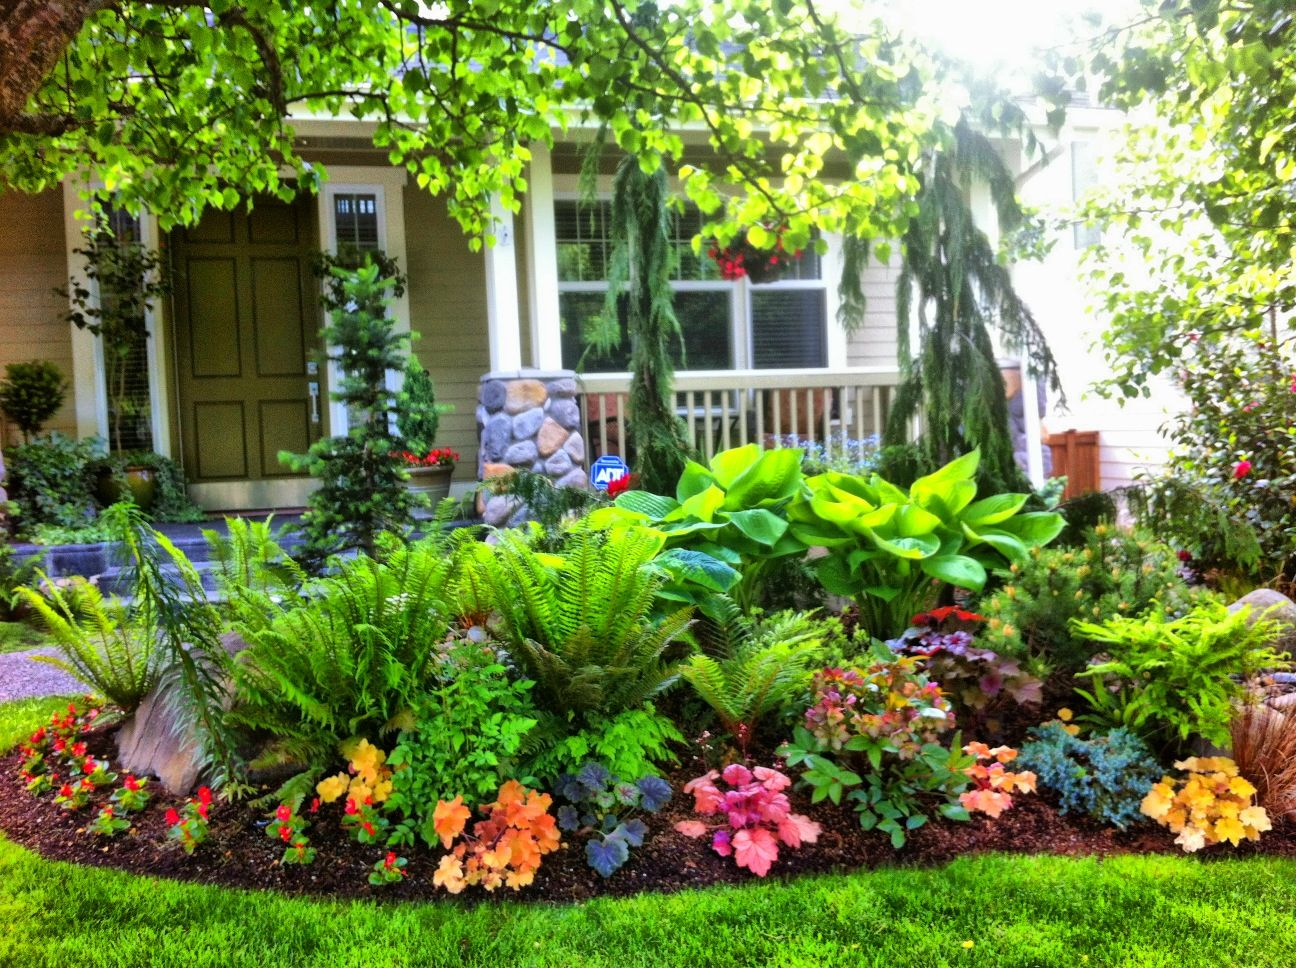 A Photo Of A Pintrest User Titled Our Front Yard Garden Summer